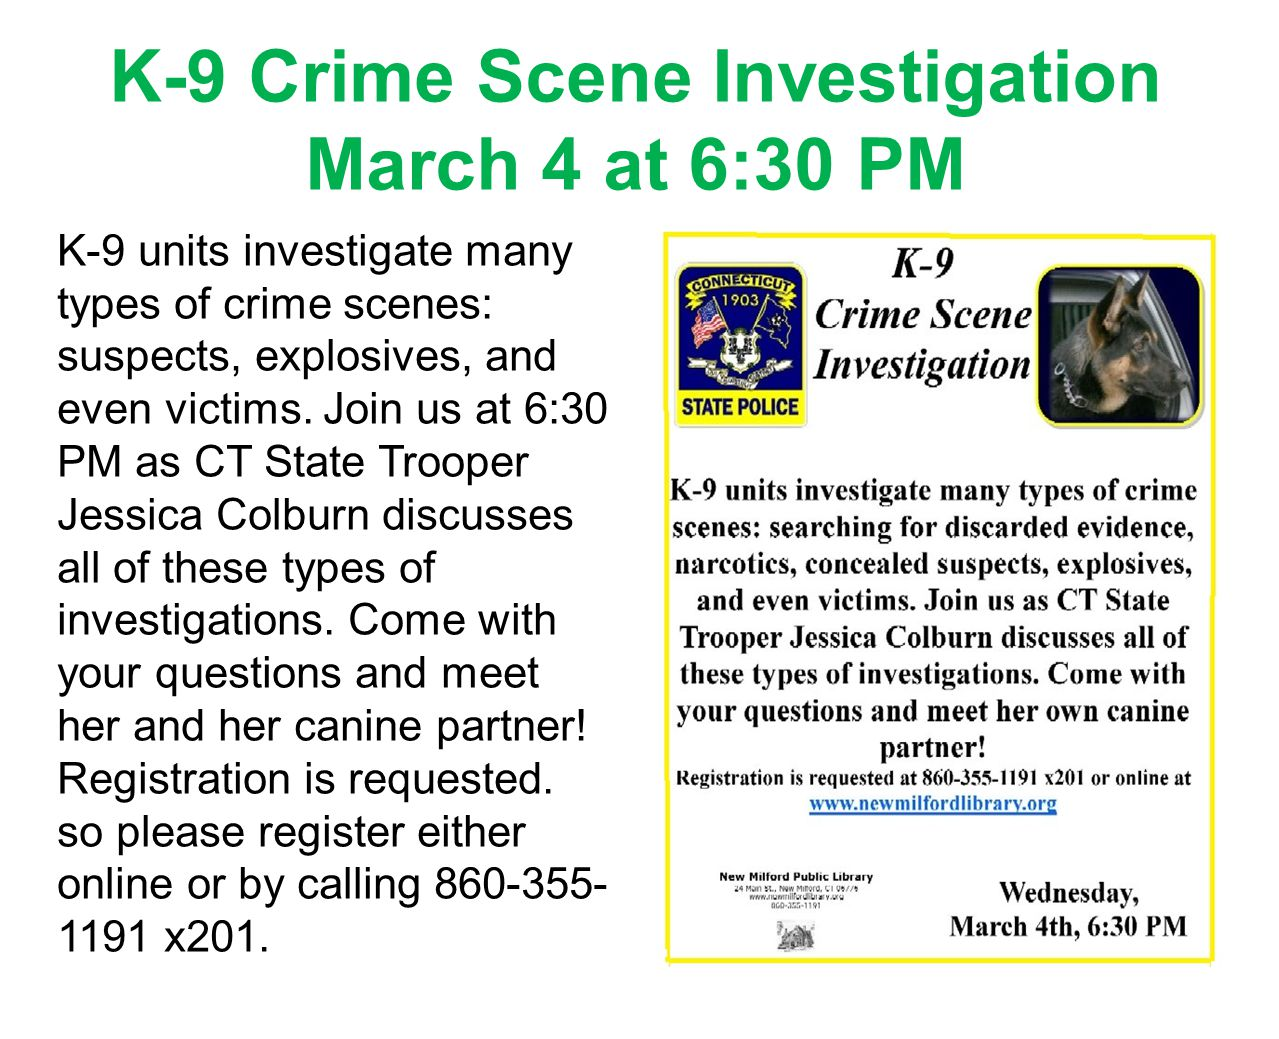 K-9 Crime Scene Investigation March 4 at 6:30 PM K-9 units investigate many types of crime scenes: suspects, explosives, and even victims. Join us at